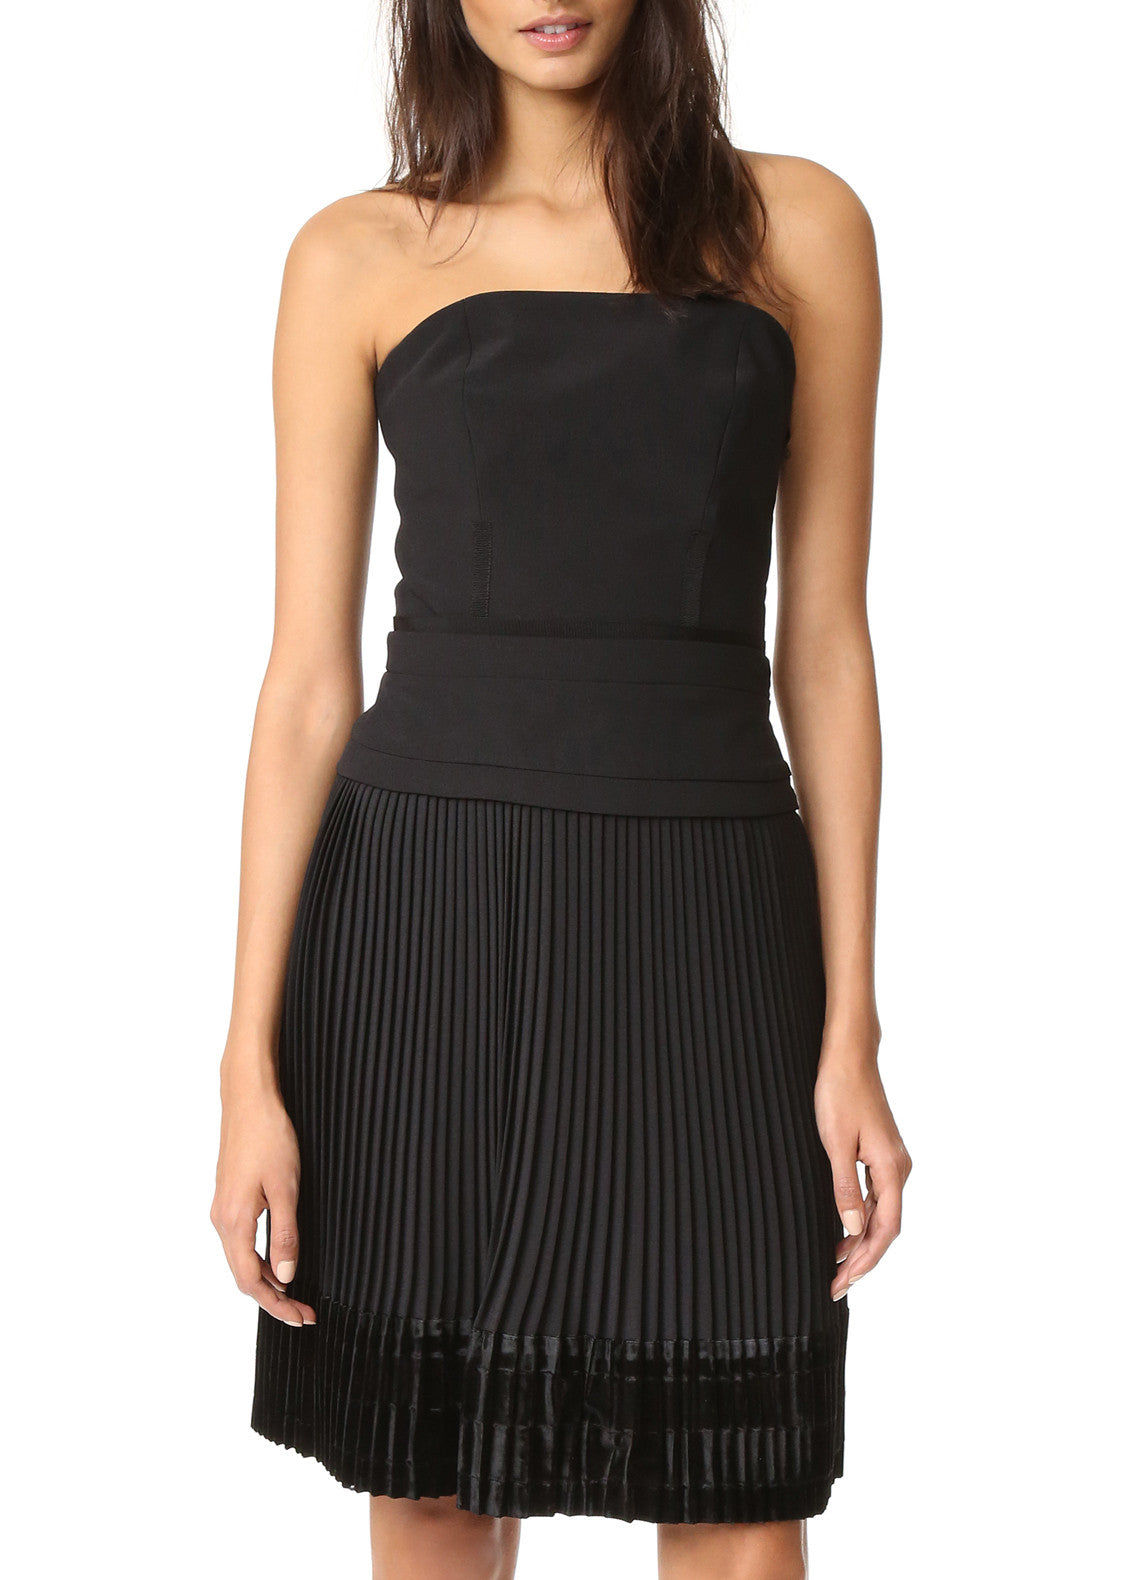 Carven strapless dress black